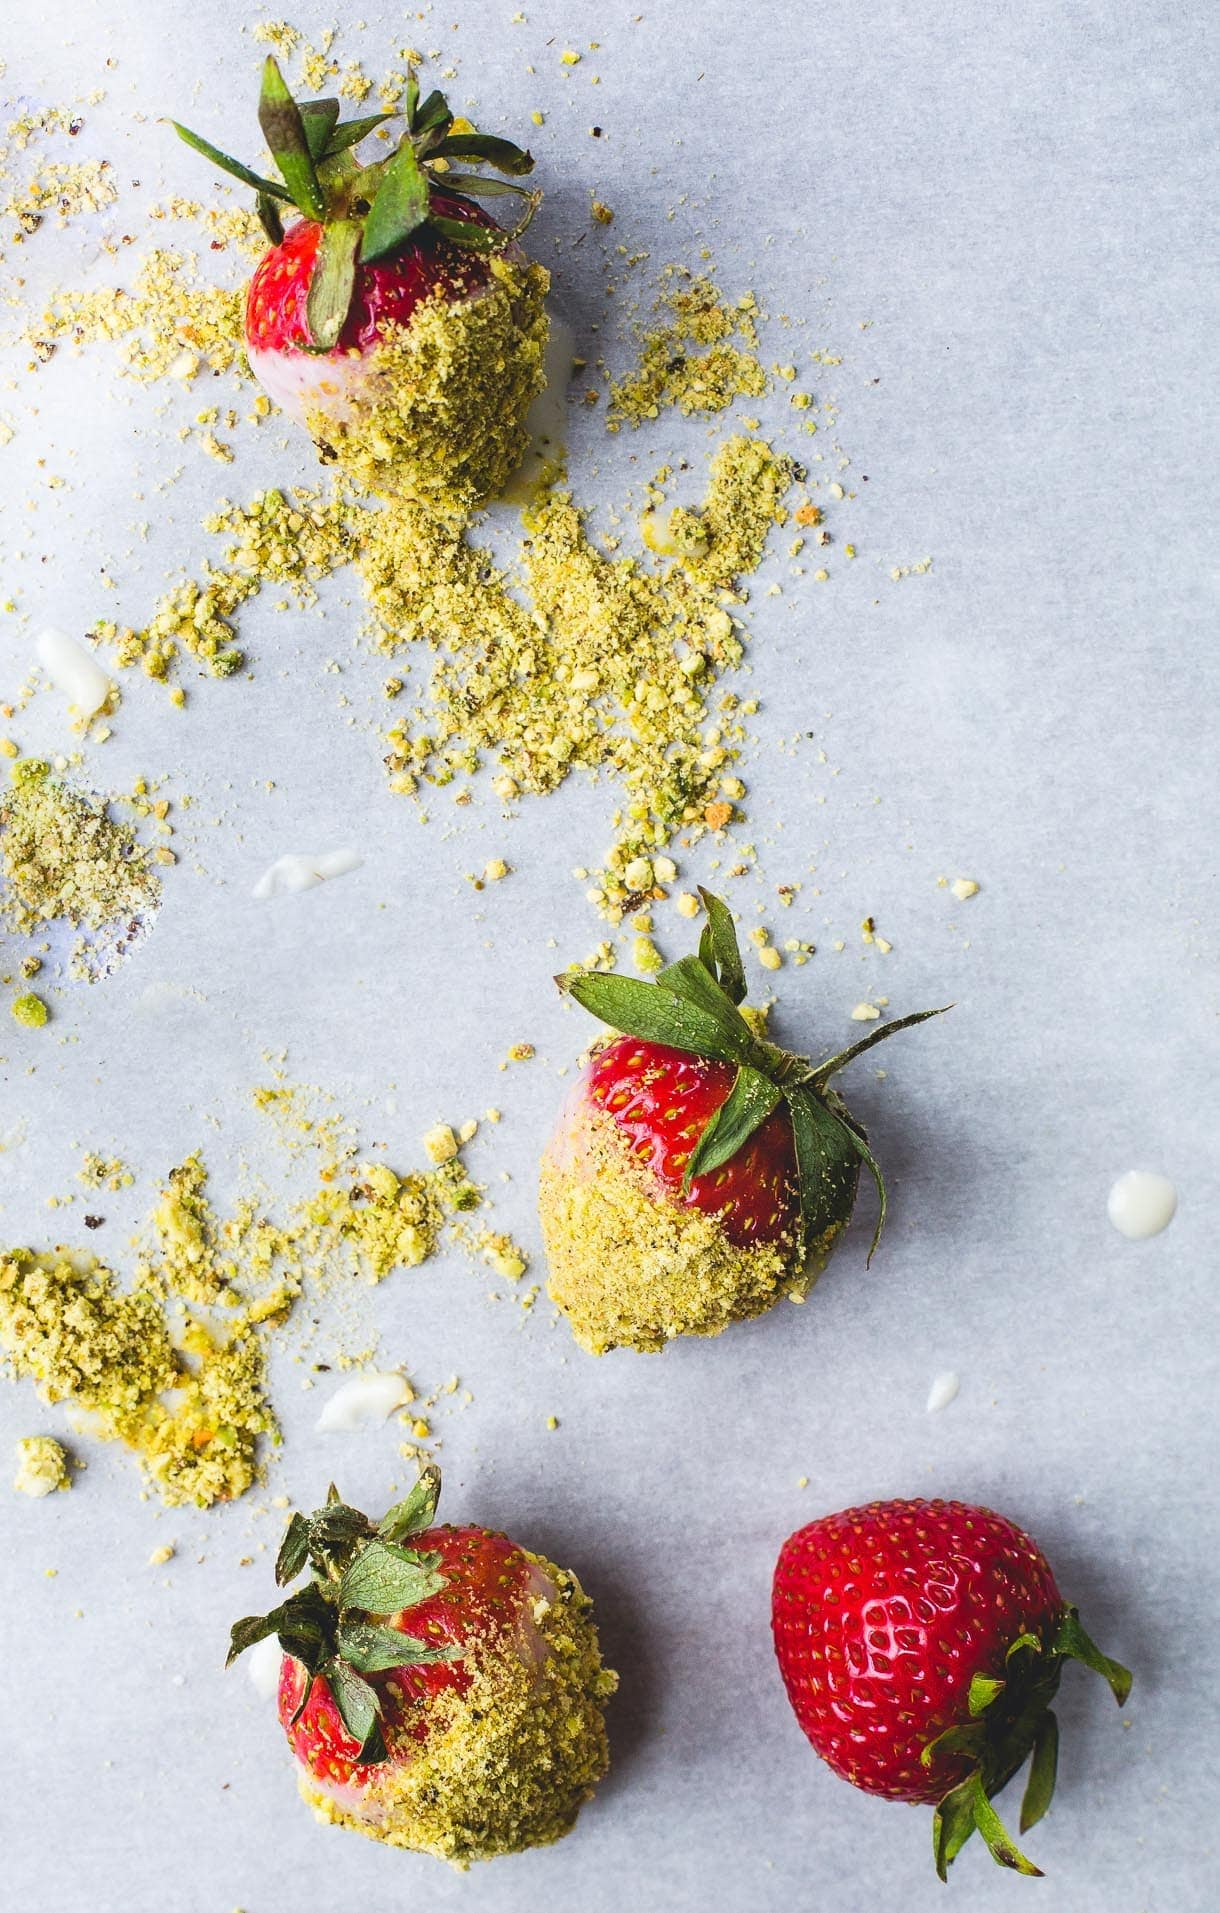 3 Ingredient Coconut Butter Dipped Strawberries with Pistachio Dust {vegan}